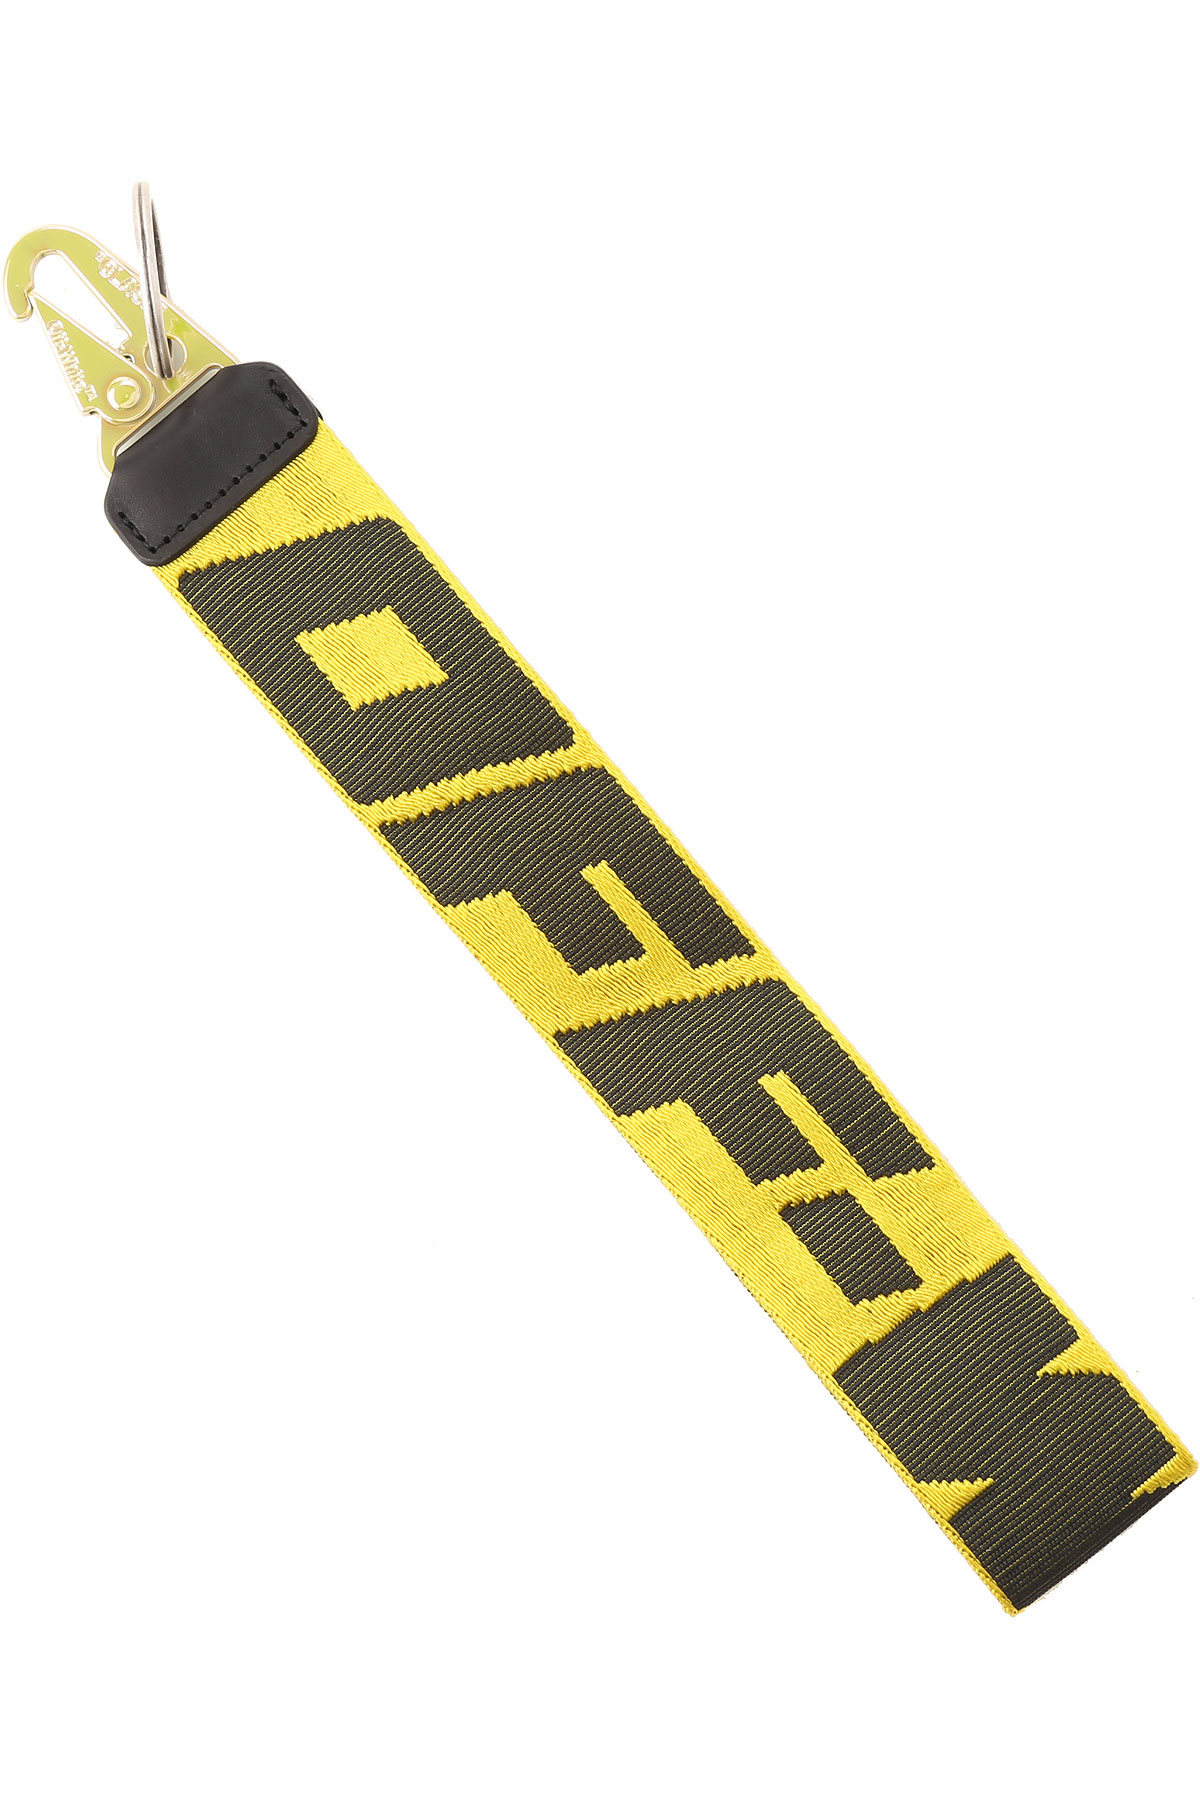 Off-White Virgil Abloh Key Chain for Men, Key Ring On Sale, Yellow, Fabric, 2019